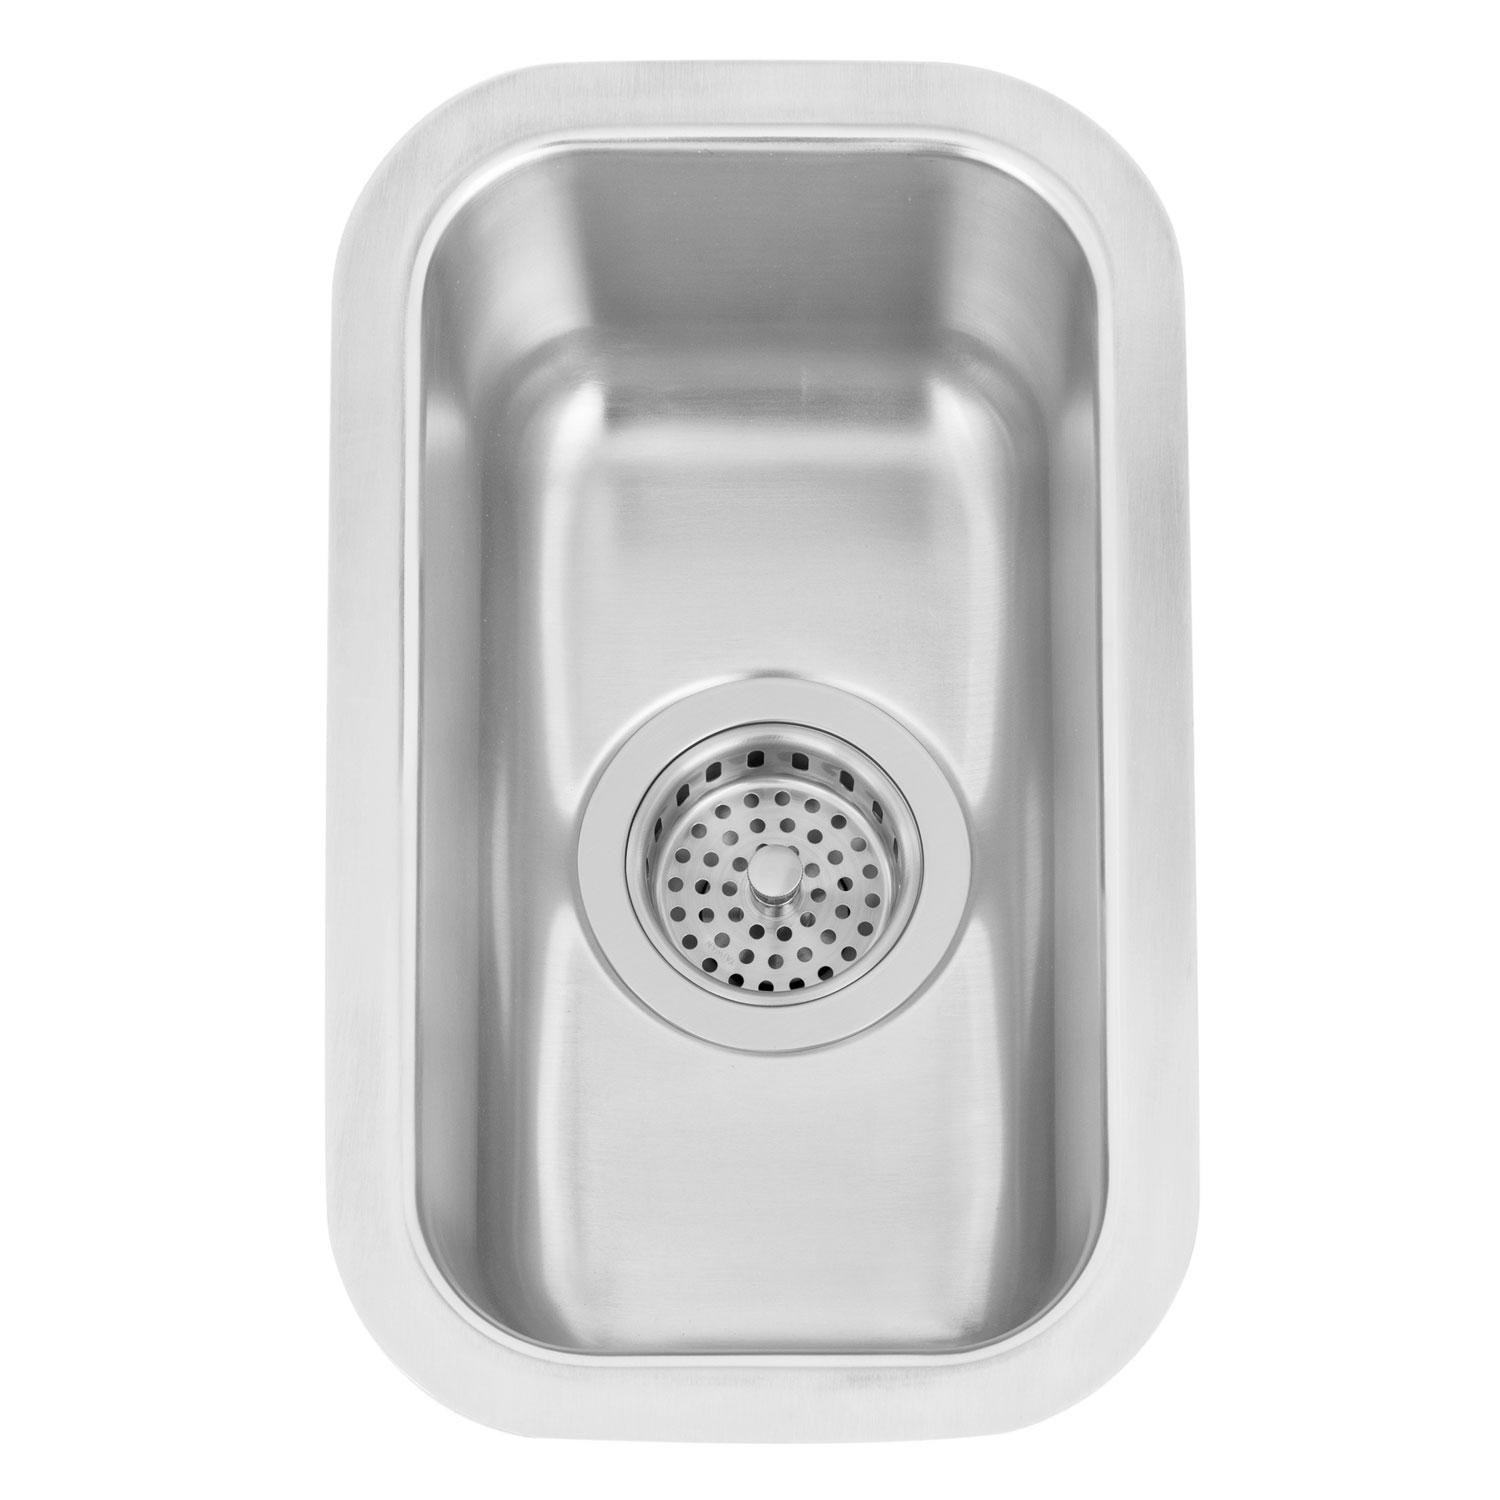 Naiture 9'' Narrow Stainless Steel Undermount Prep Kitchen Sink Without Drain by SH